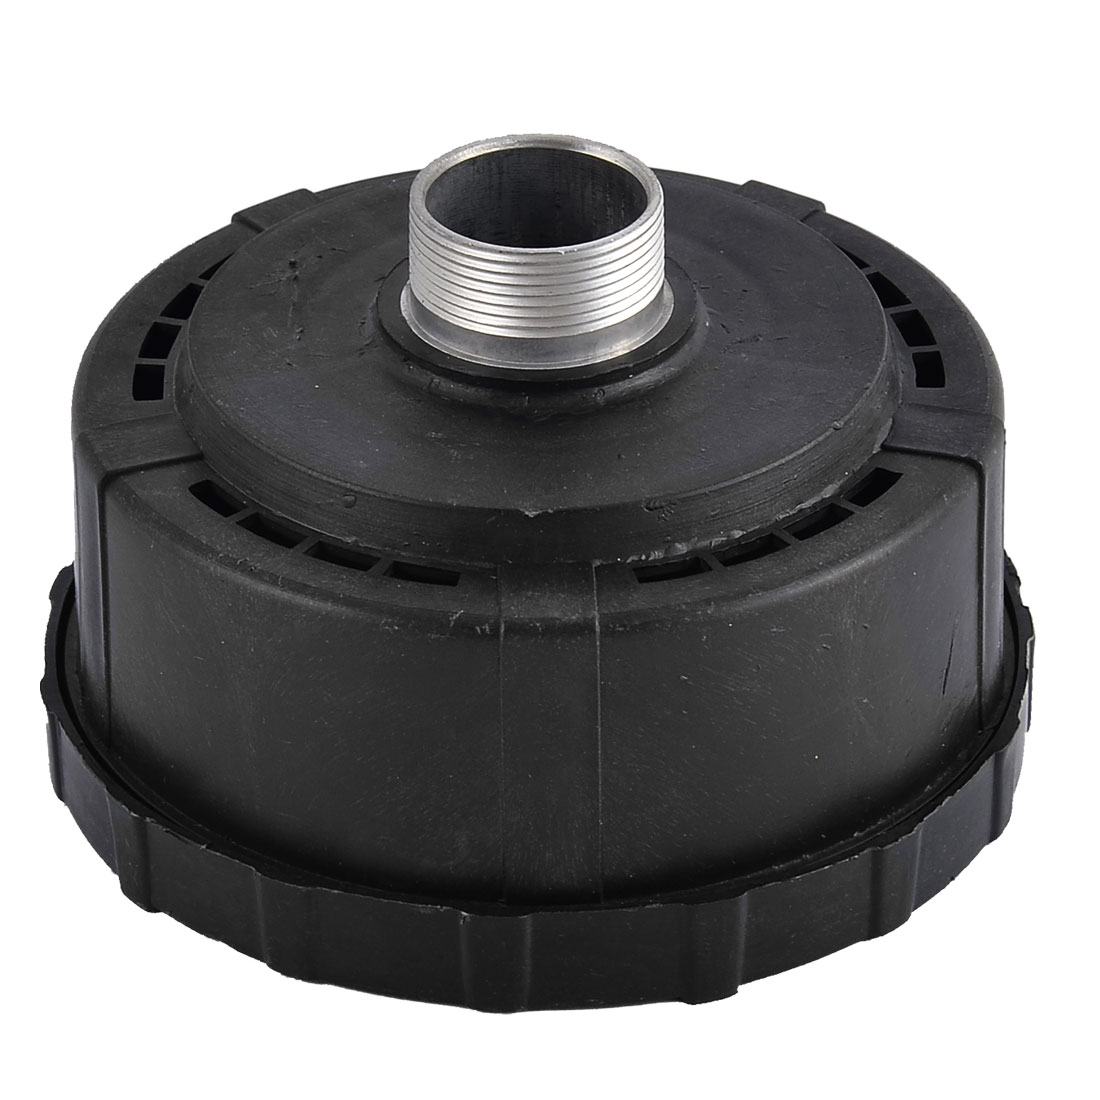 30mm Thread Dia Plastic Housing Air Compressor Intake Filter Muffler Black